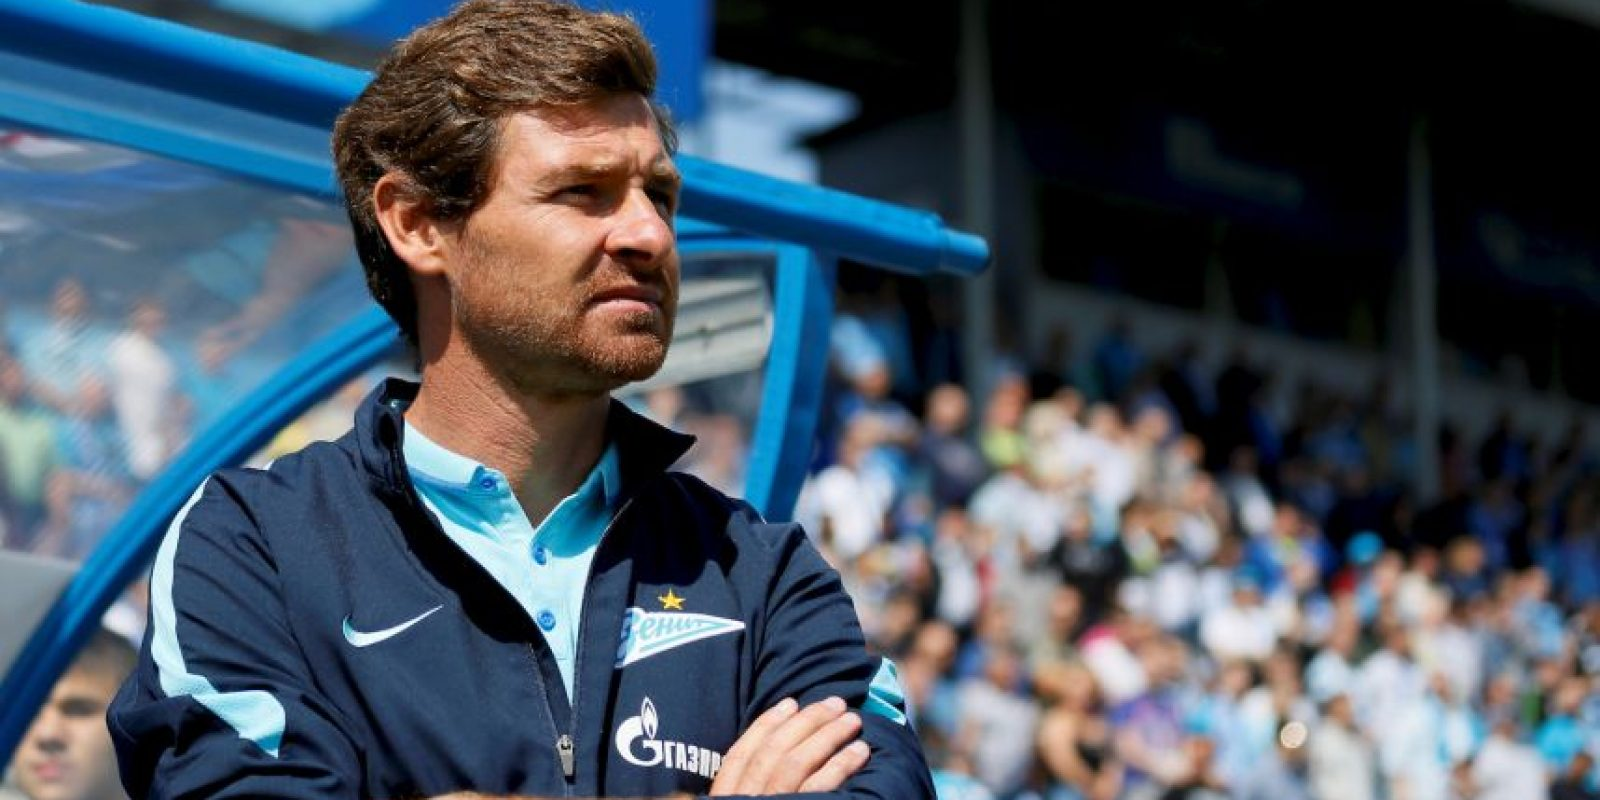 André Villas-Boas Foto: Getty Images